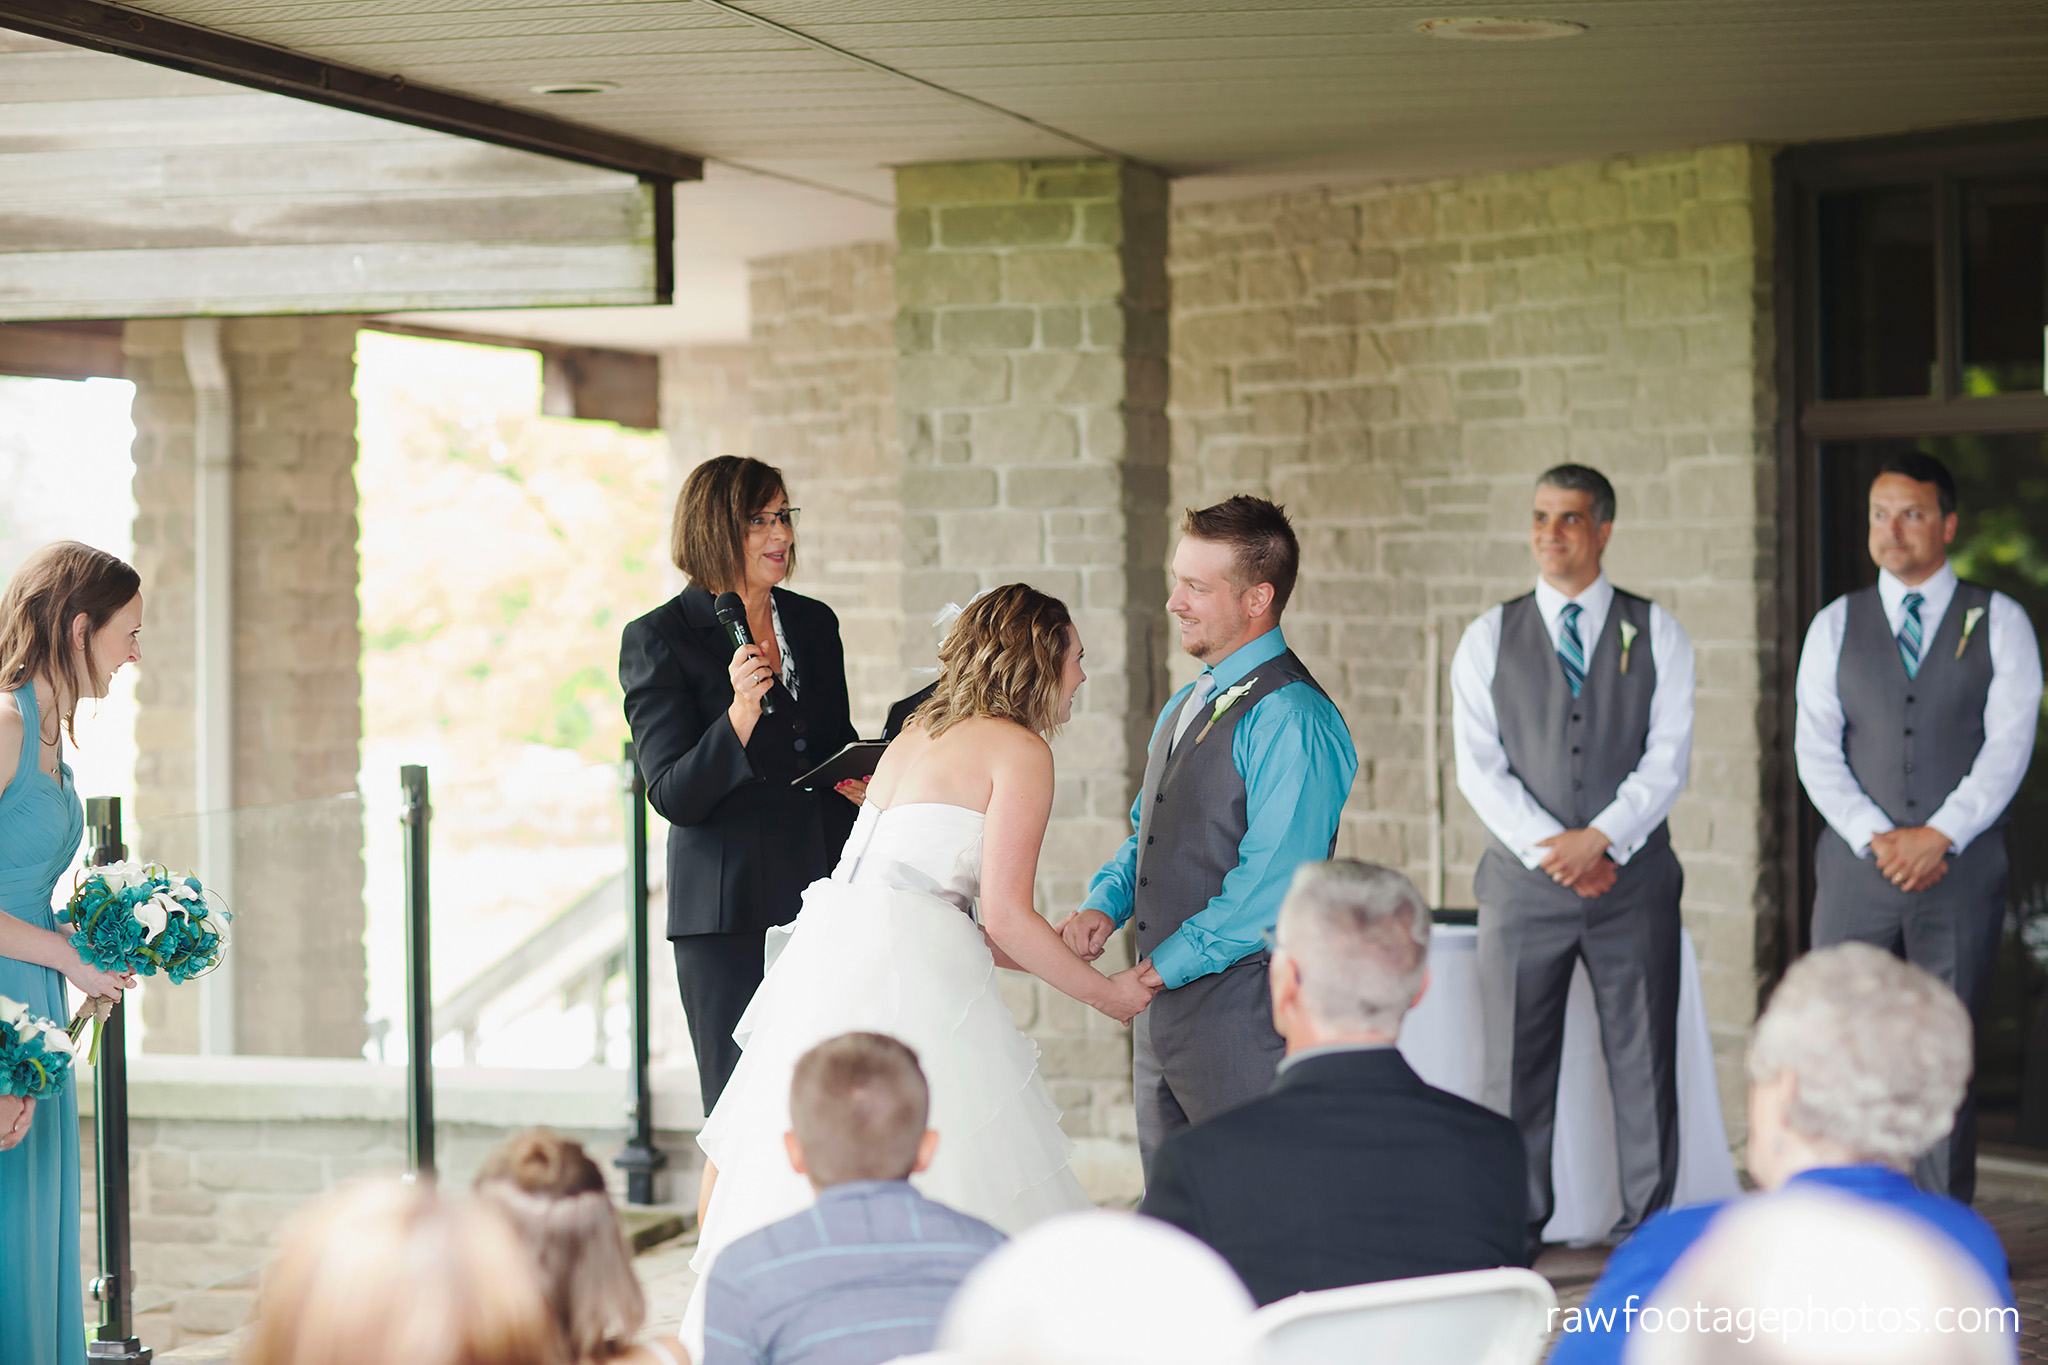 london_ontario_wedding_photographer-west_haven_golf_and_country_club-raw_footage_photography017.jpg